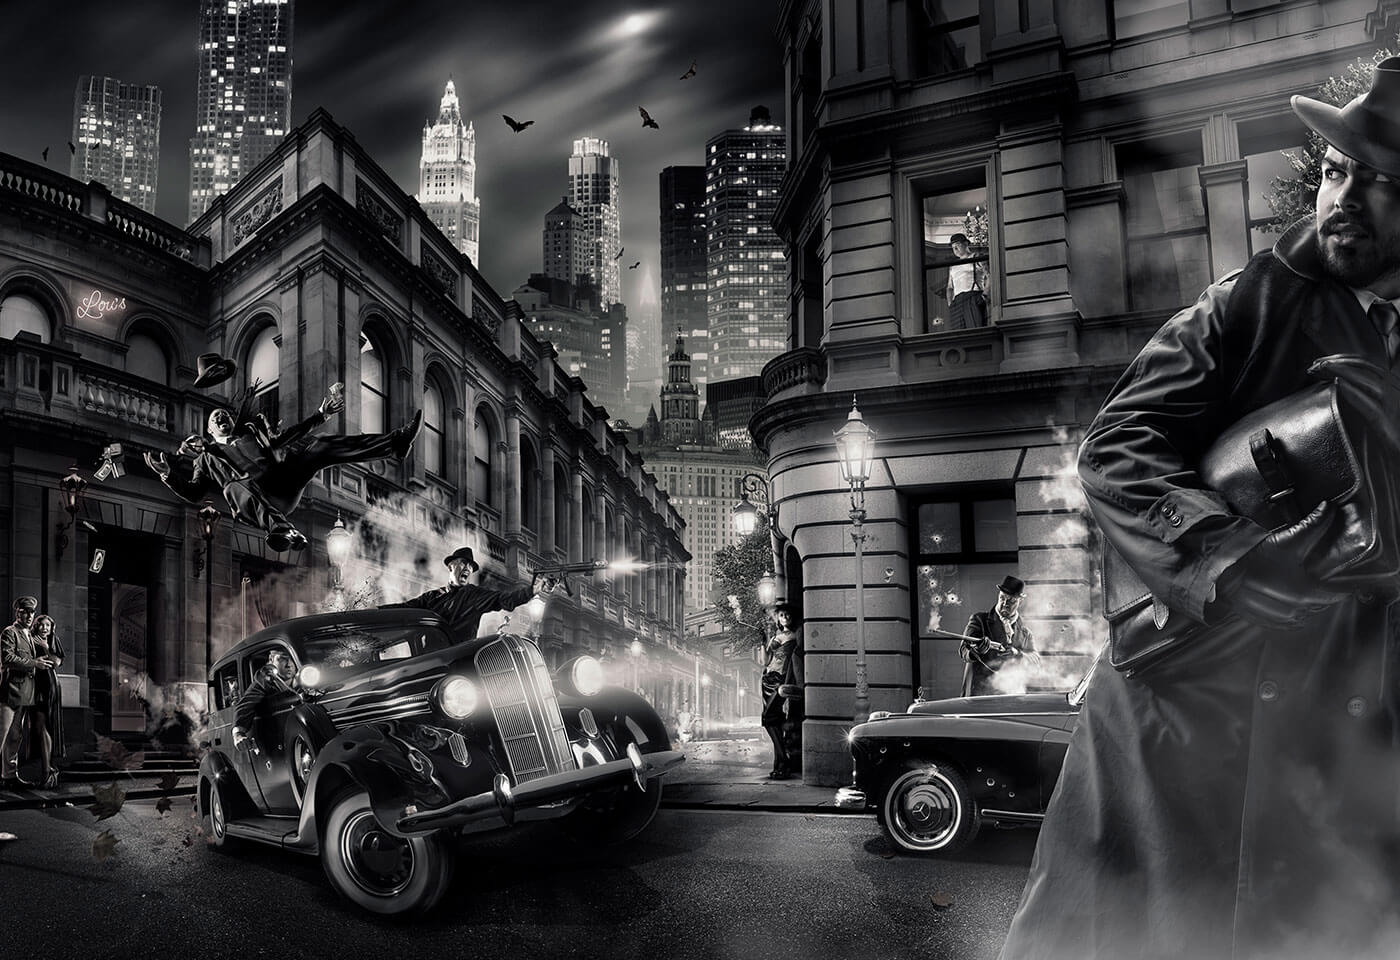 B&W composite image of bank heist by Damien Bredberg